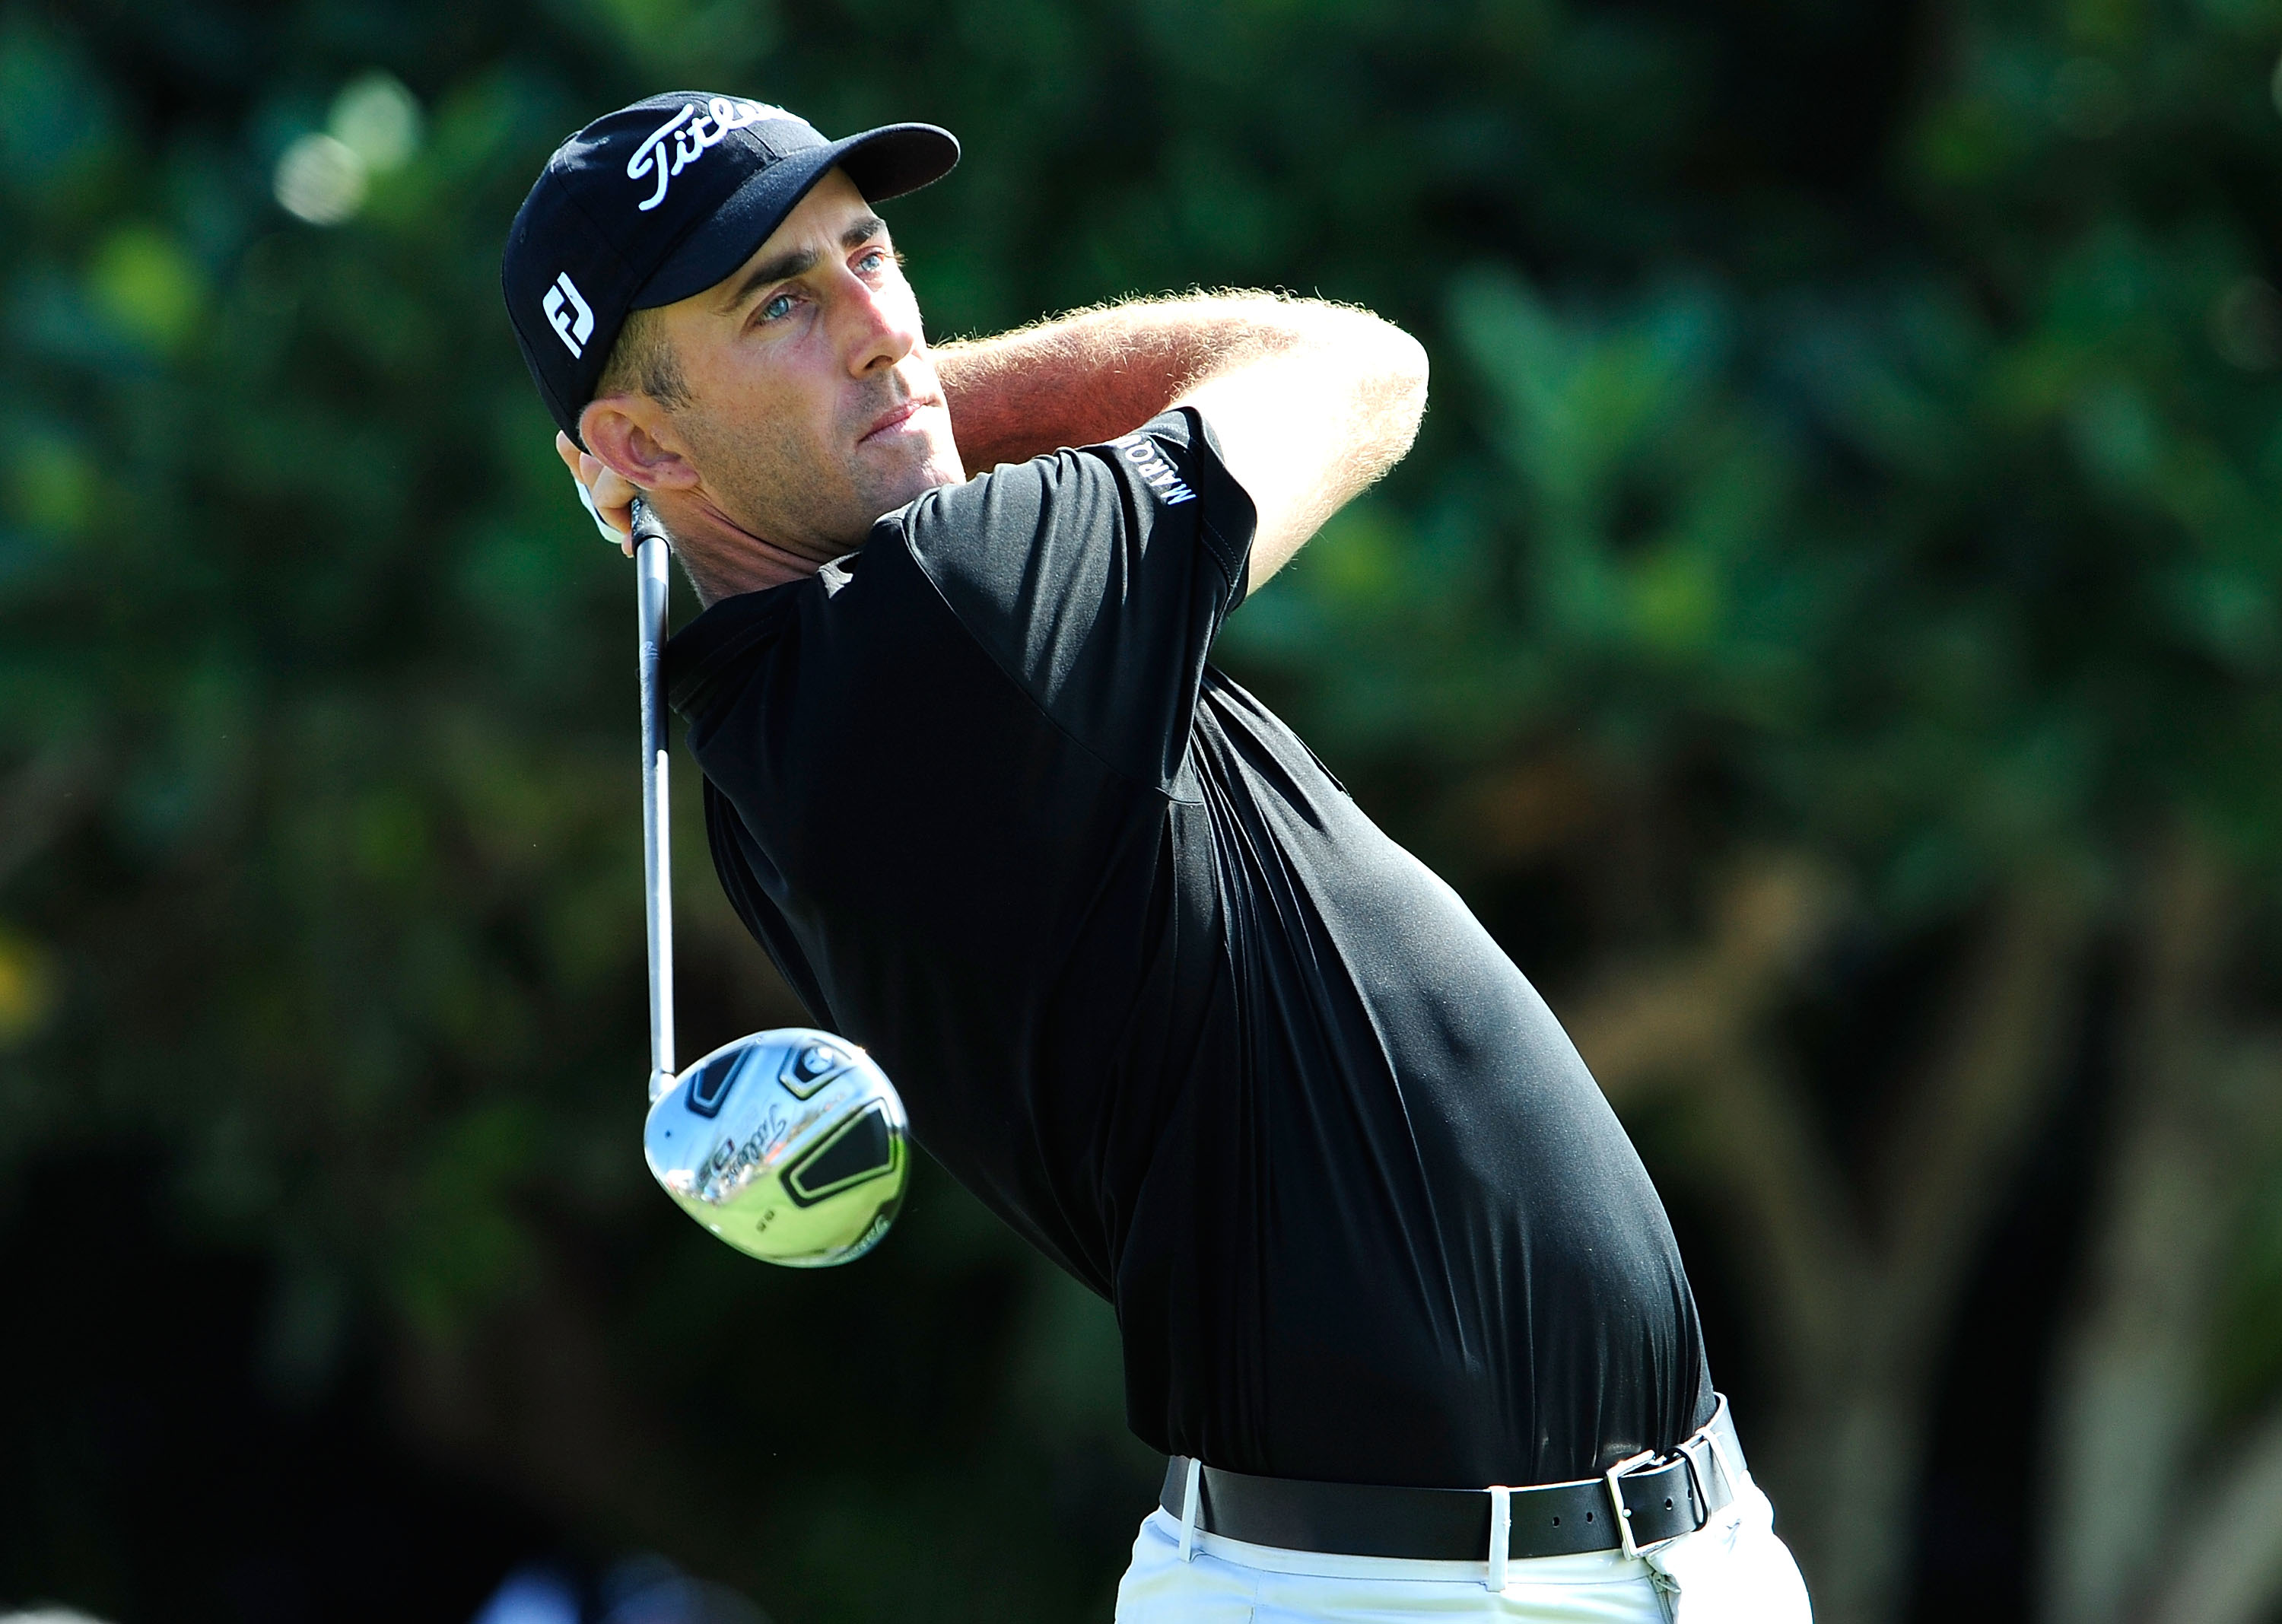 Geoff Ogilvy wins the first PGA Tour event in 2010 wearing Travis Mathew apparel.